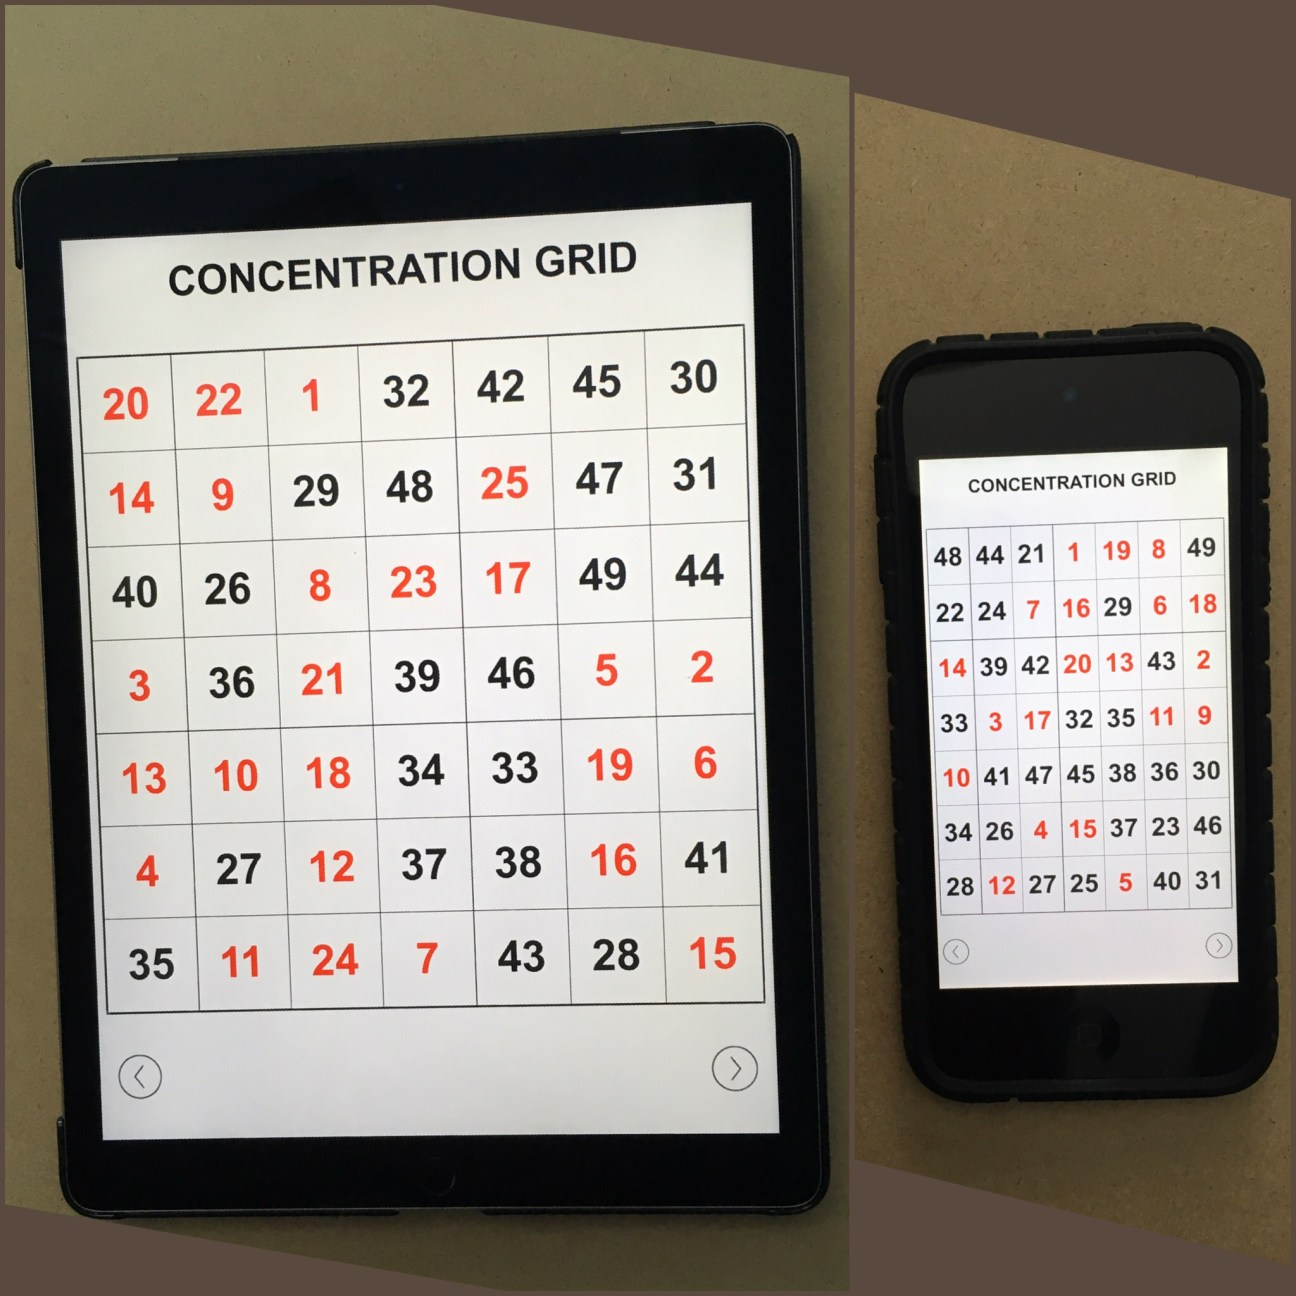 Concentration Grid is a mental skills training exercise/app for students, athletes, coaches, sports performance/psychology professionals, trainers, teachers, parents, etc. Use concentration grids a/k/a mental focus grids with student-athletes as a tool for assessment, practice and development of focus/attention skills … and for competitive challenge and fun. Make self-development a daily habit. #challengeyourself #concentrationgrid -www.concentrationgrid.com – www.mentalfocusgrids.com – www.tryconcentrationgrid.com